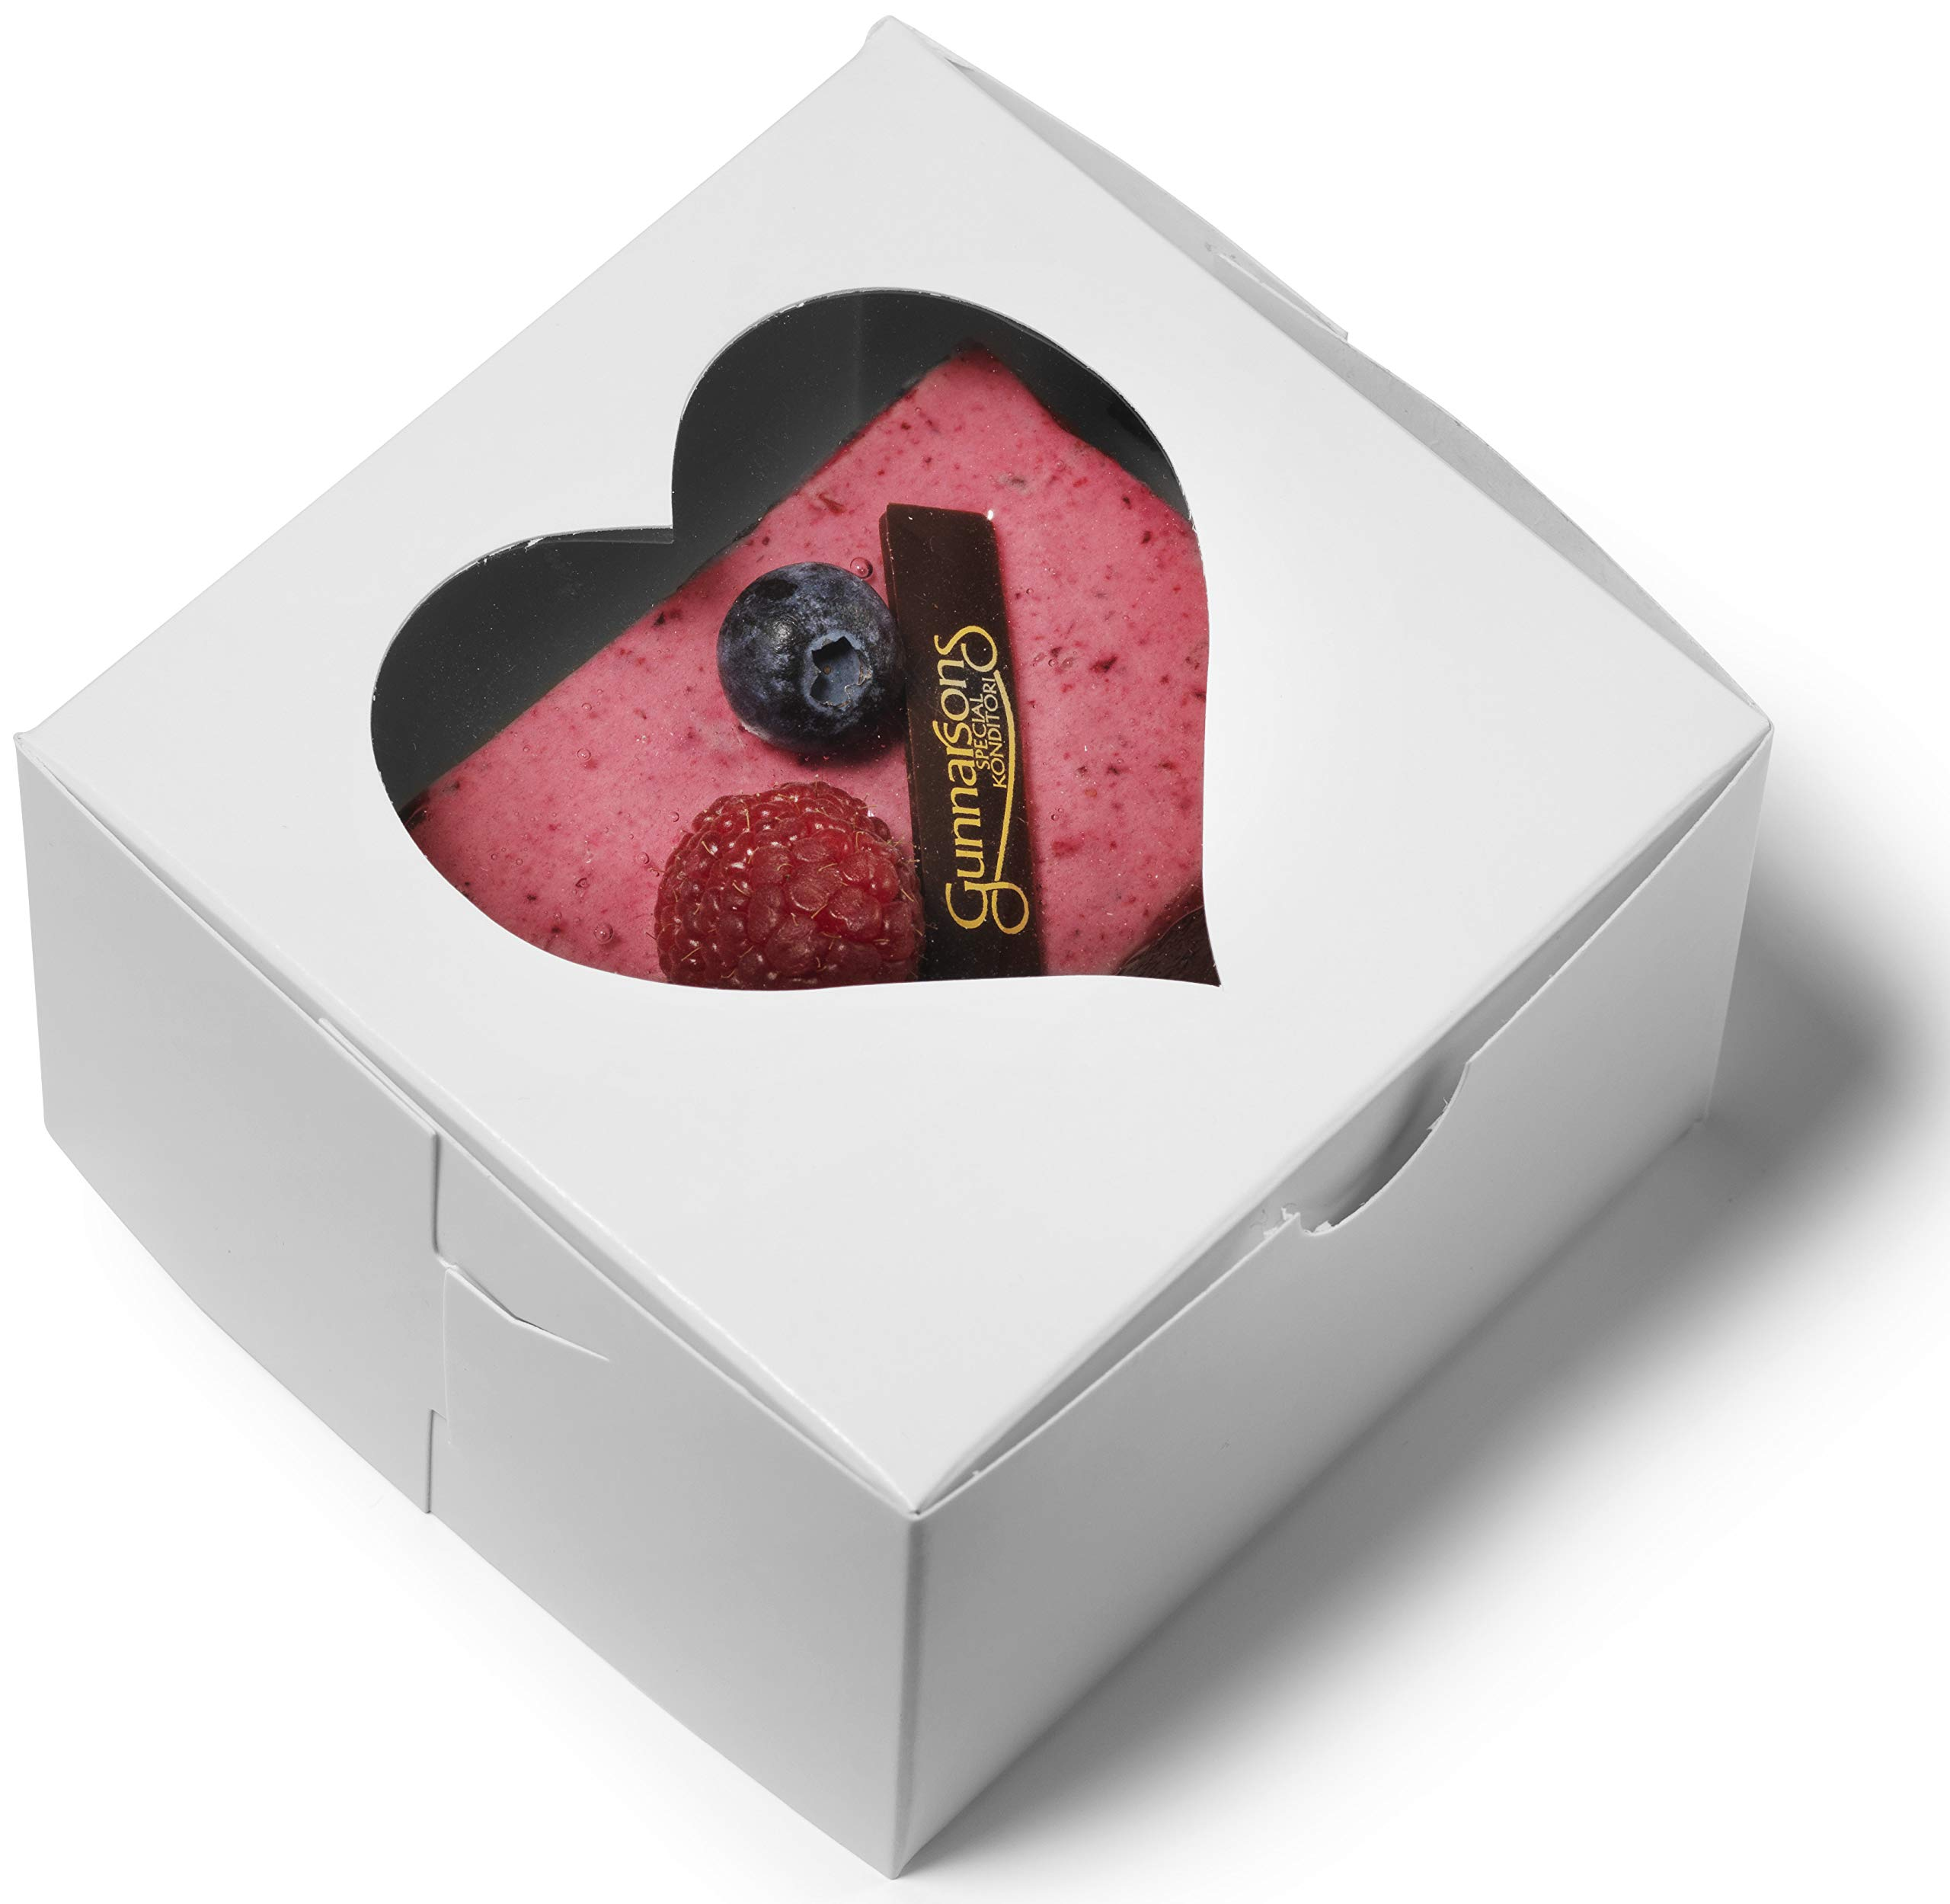 Bakery Boxes 4x4x2.5'' Heart Window [50Pack]   by Cuisiner   White Pastry Containers for Cake, Pies, Donut, Cookies, Cupcake and Party Treat   Ideal for Baby Shower, Dessert Packaging by Cuisiner